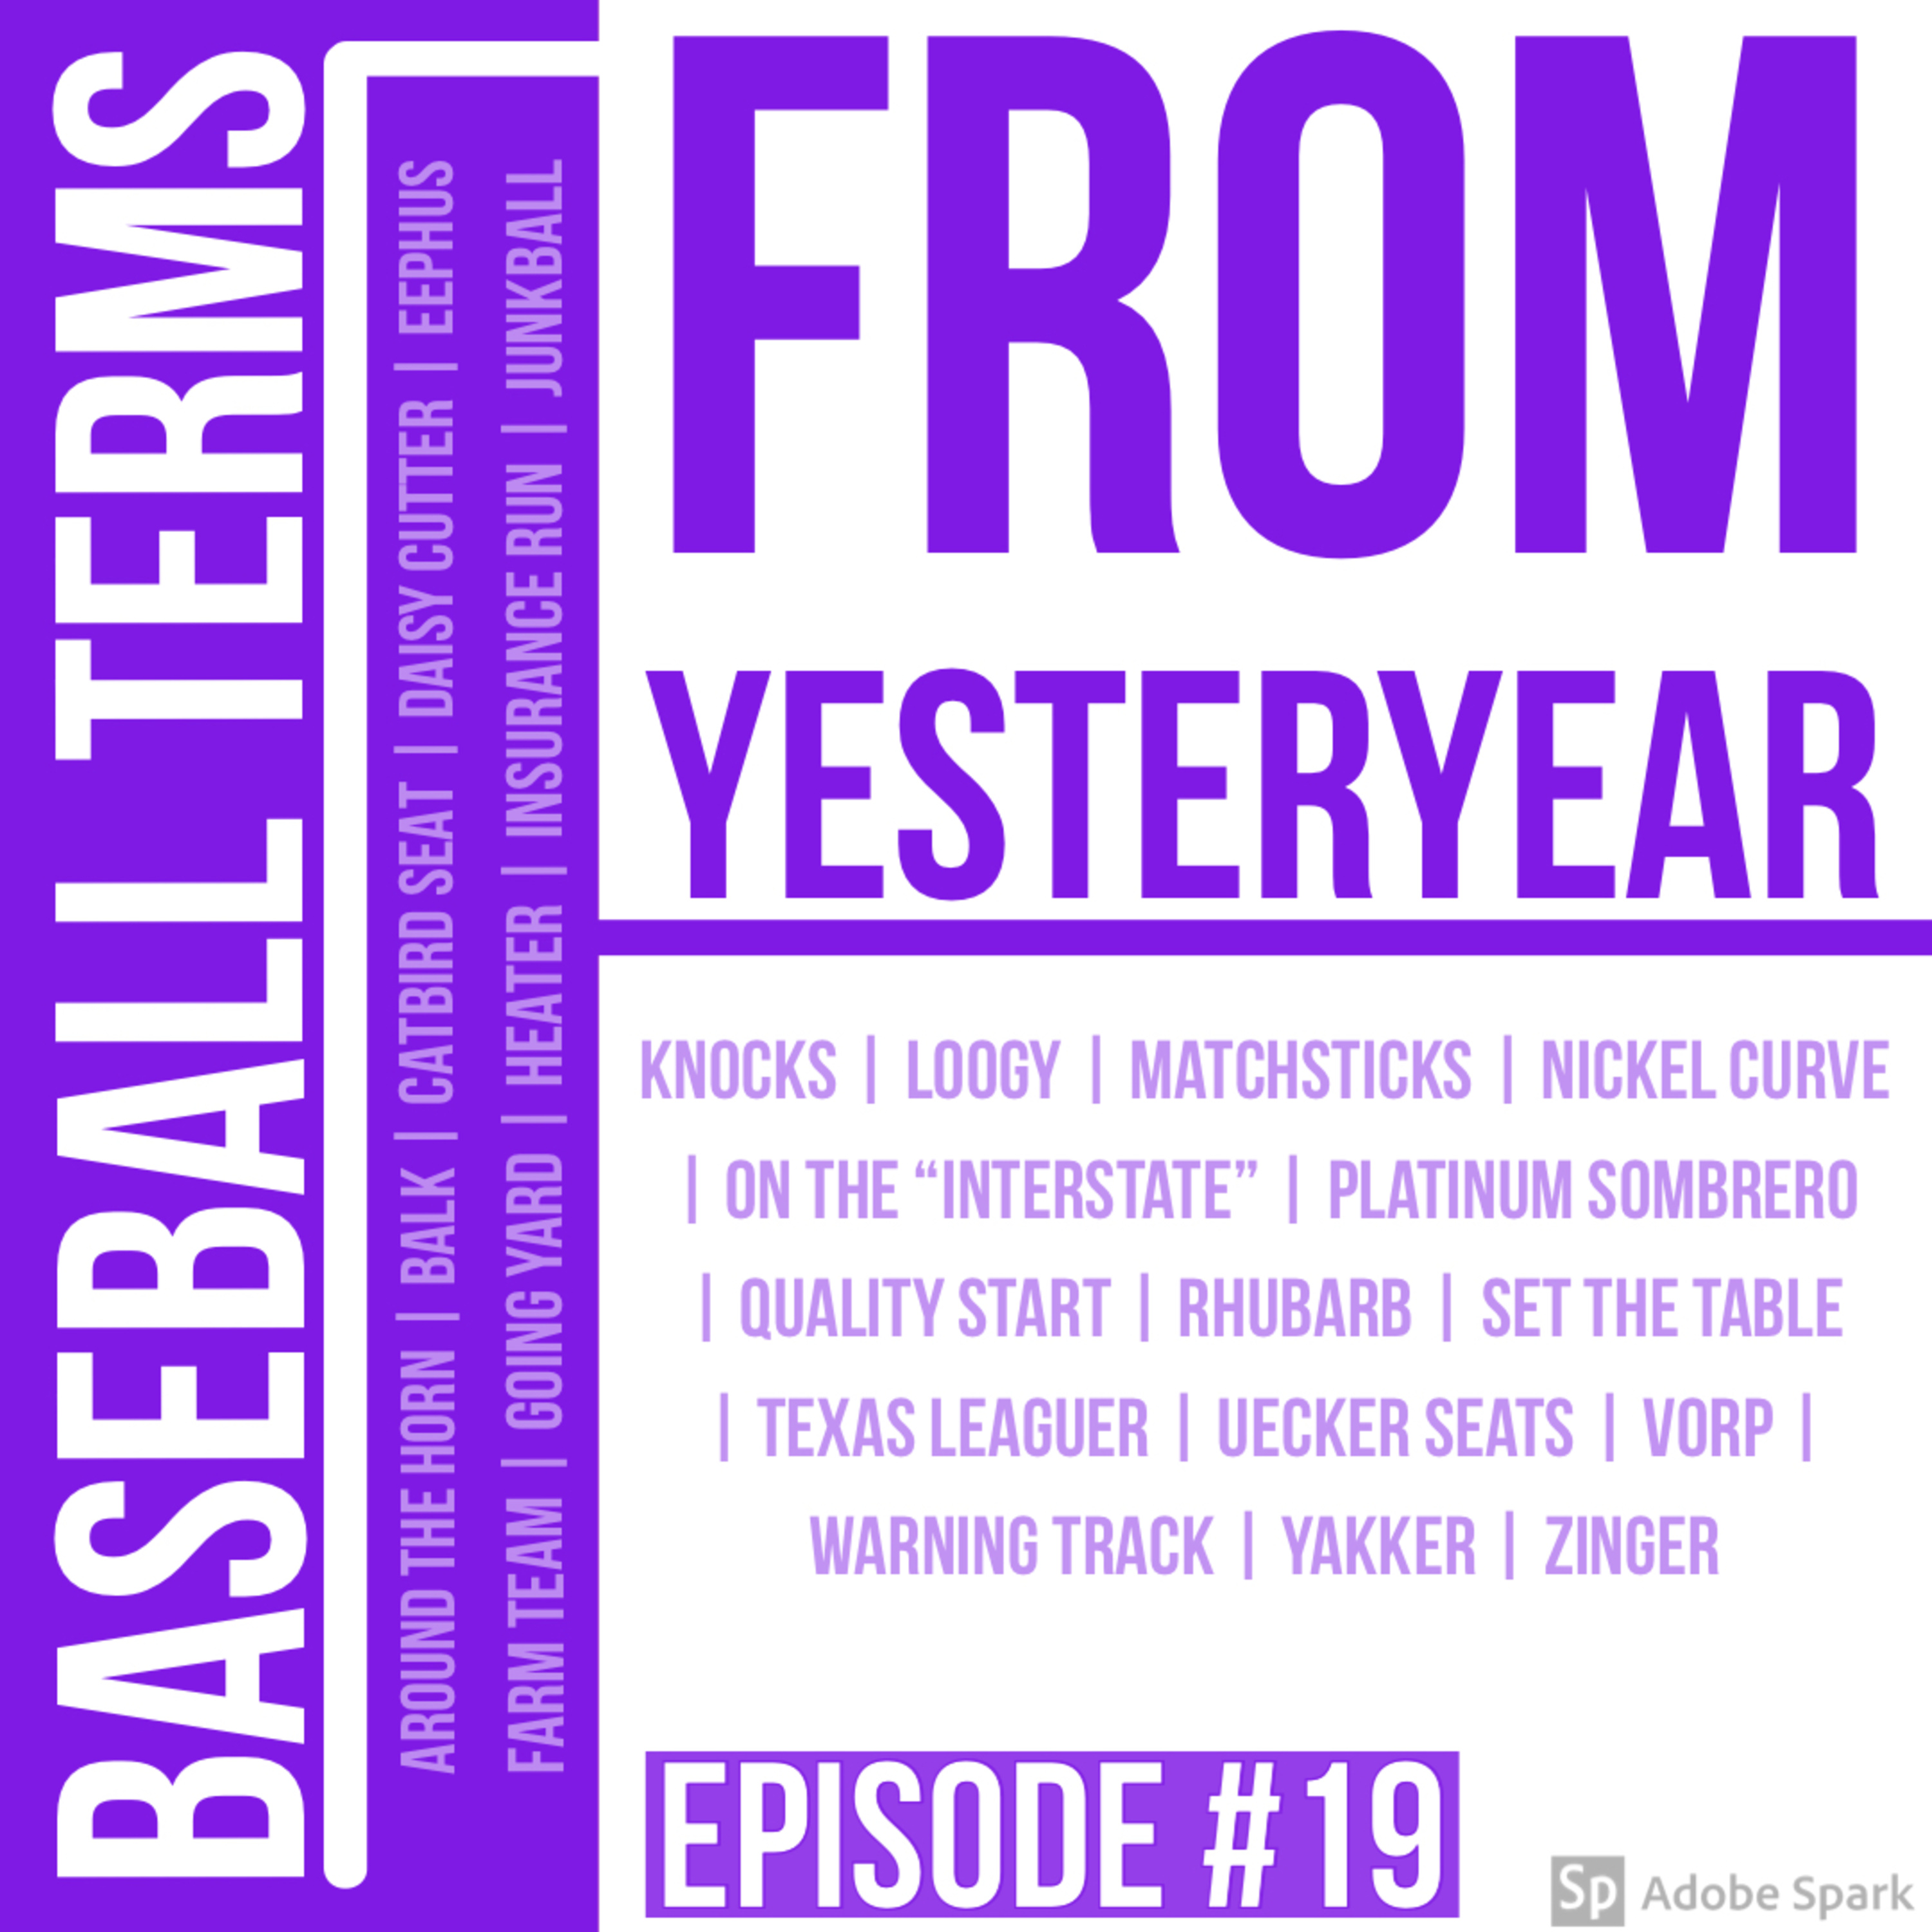 Episode 19: Baseball Terms from Yesteryear